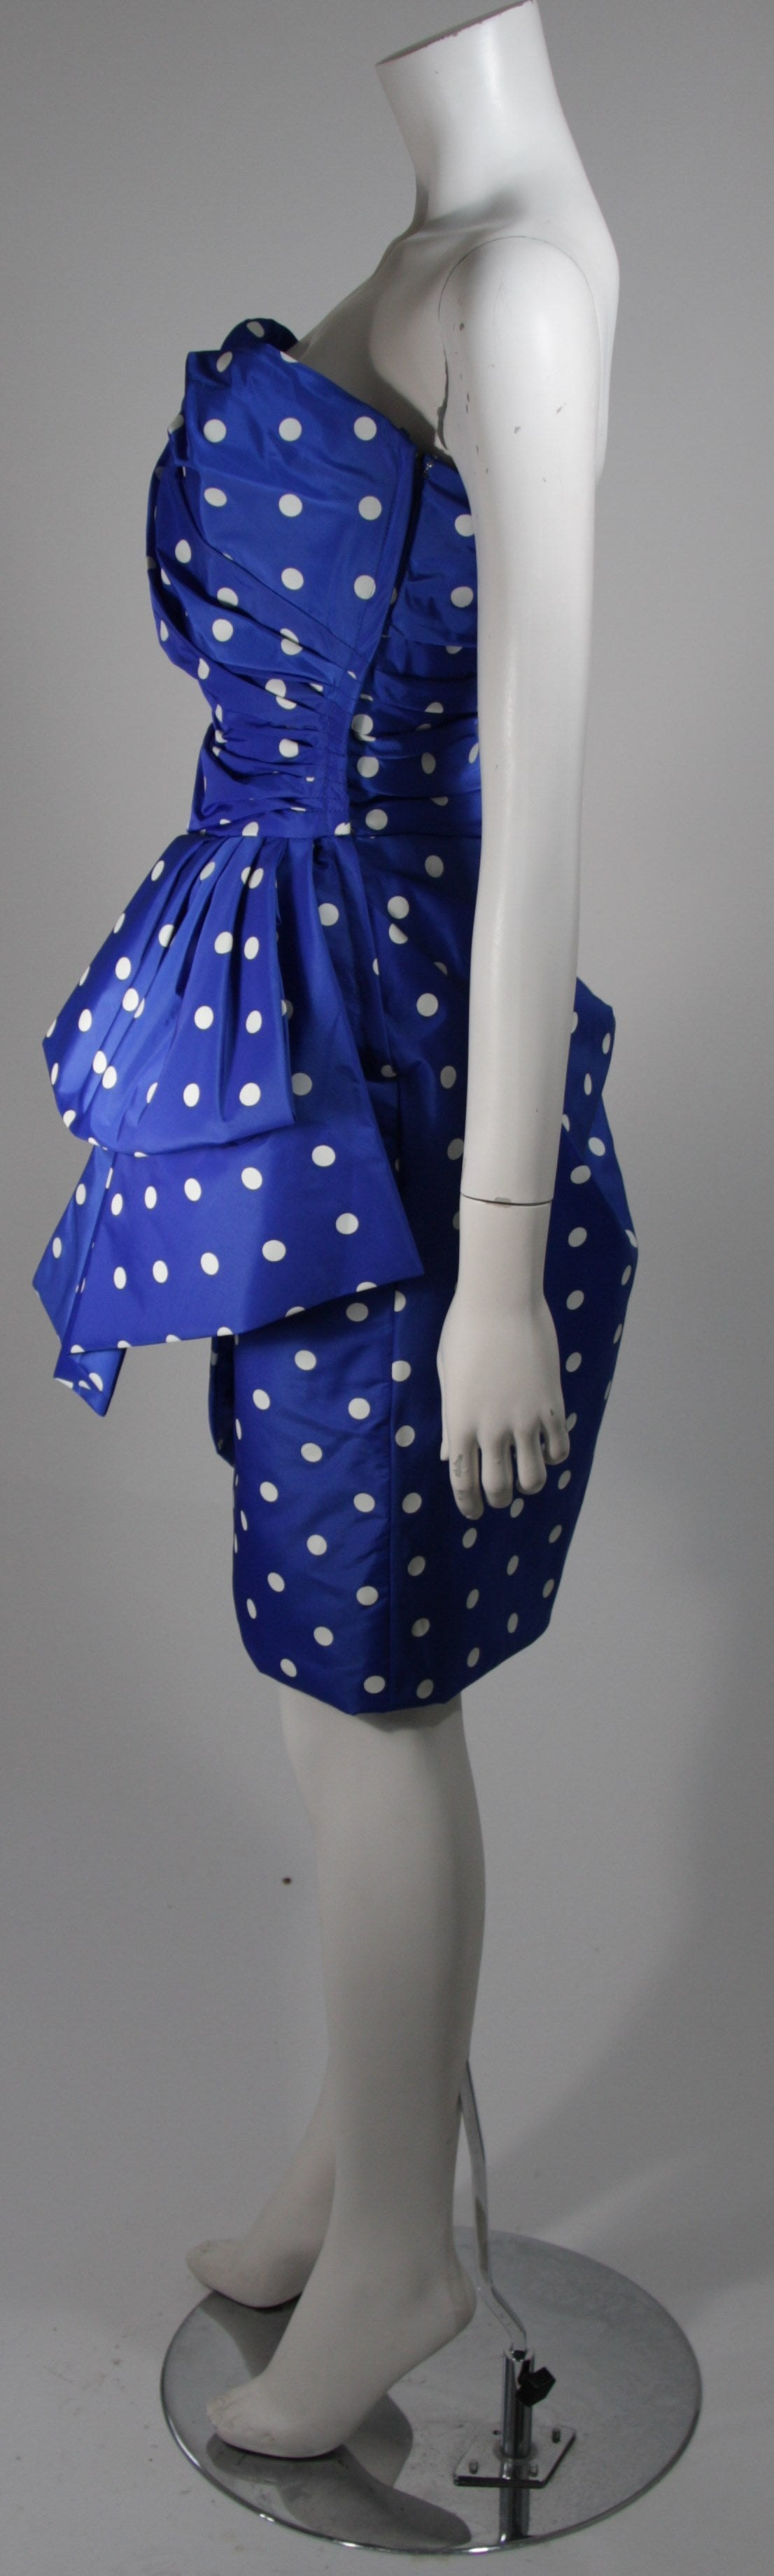 Women's Victor Costa Royal Blue and White Polka Dot Cocktail Dress Size 8 For Sale